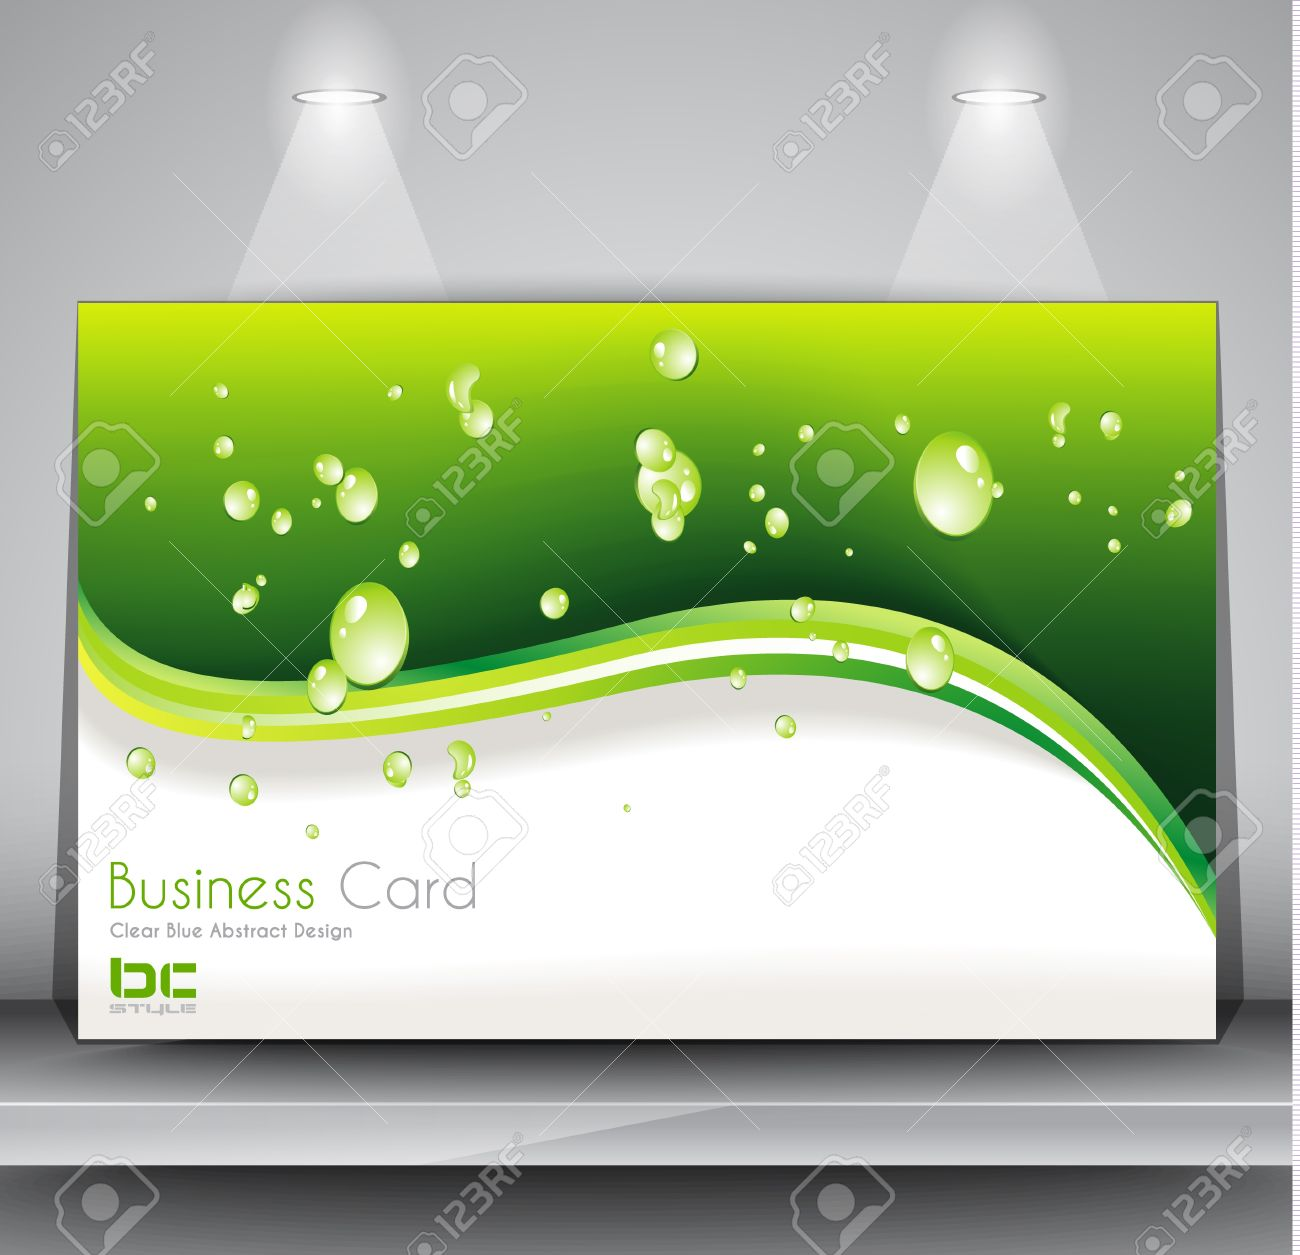 Templates Green Business Card Template Stock Illustration. Green ...